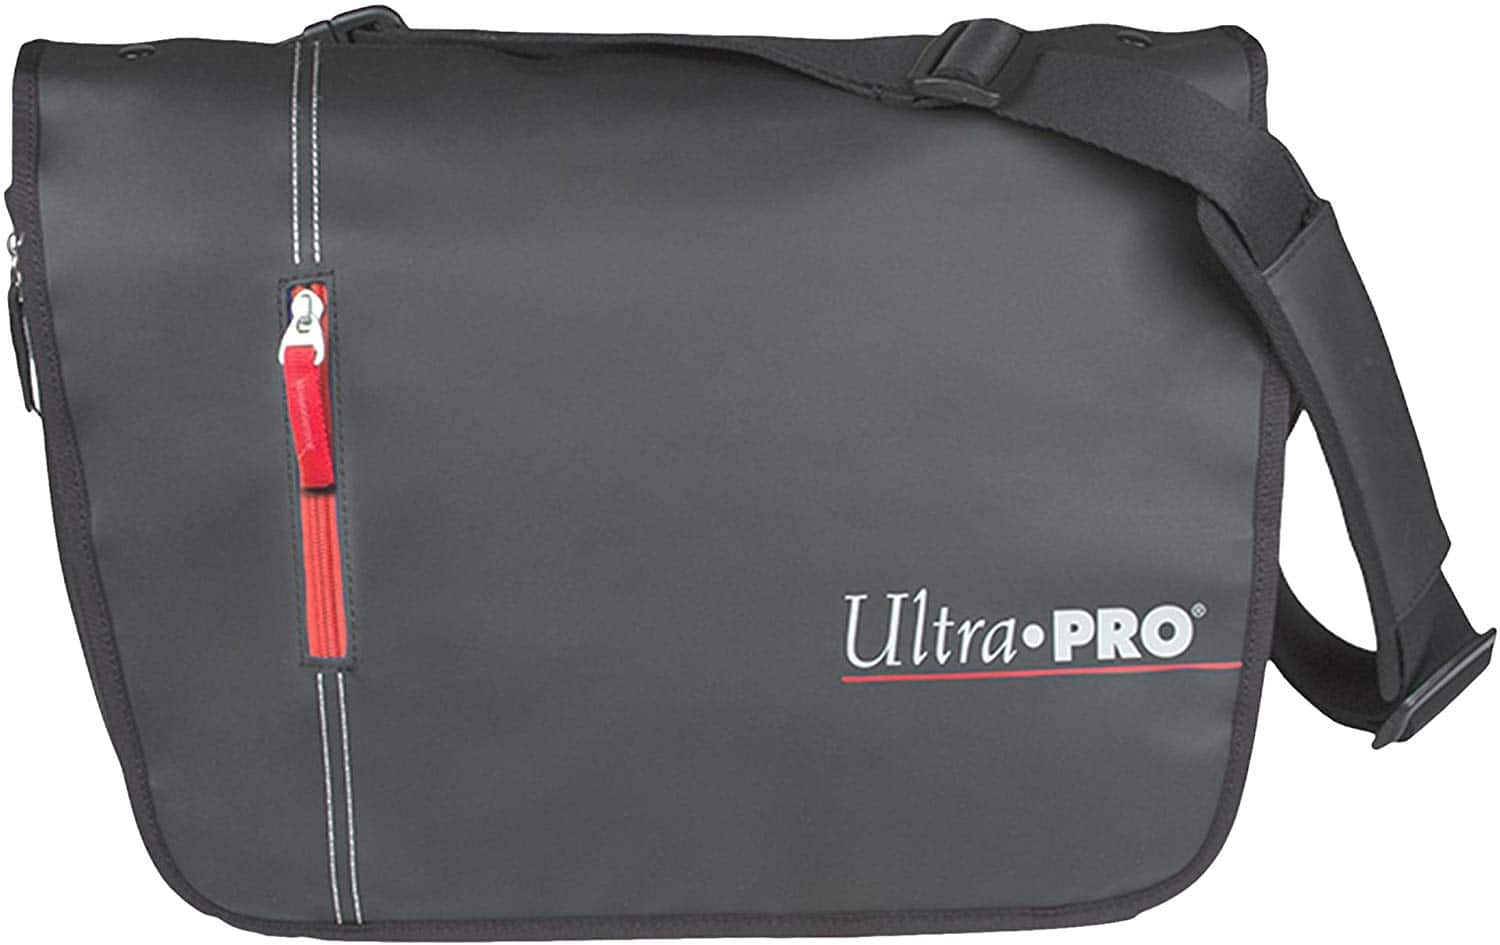 Ultra Pro Gamers Bag - Red - $12.86 at Amazon + FS with Prime